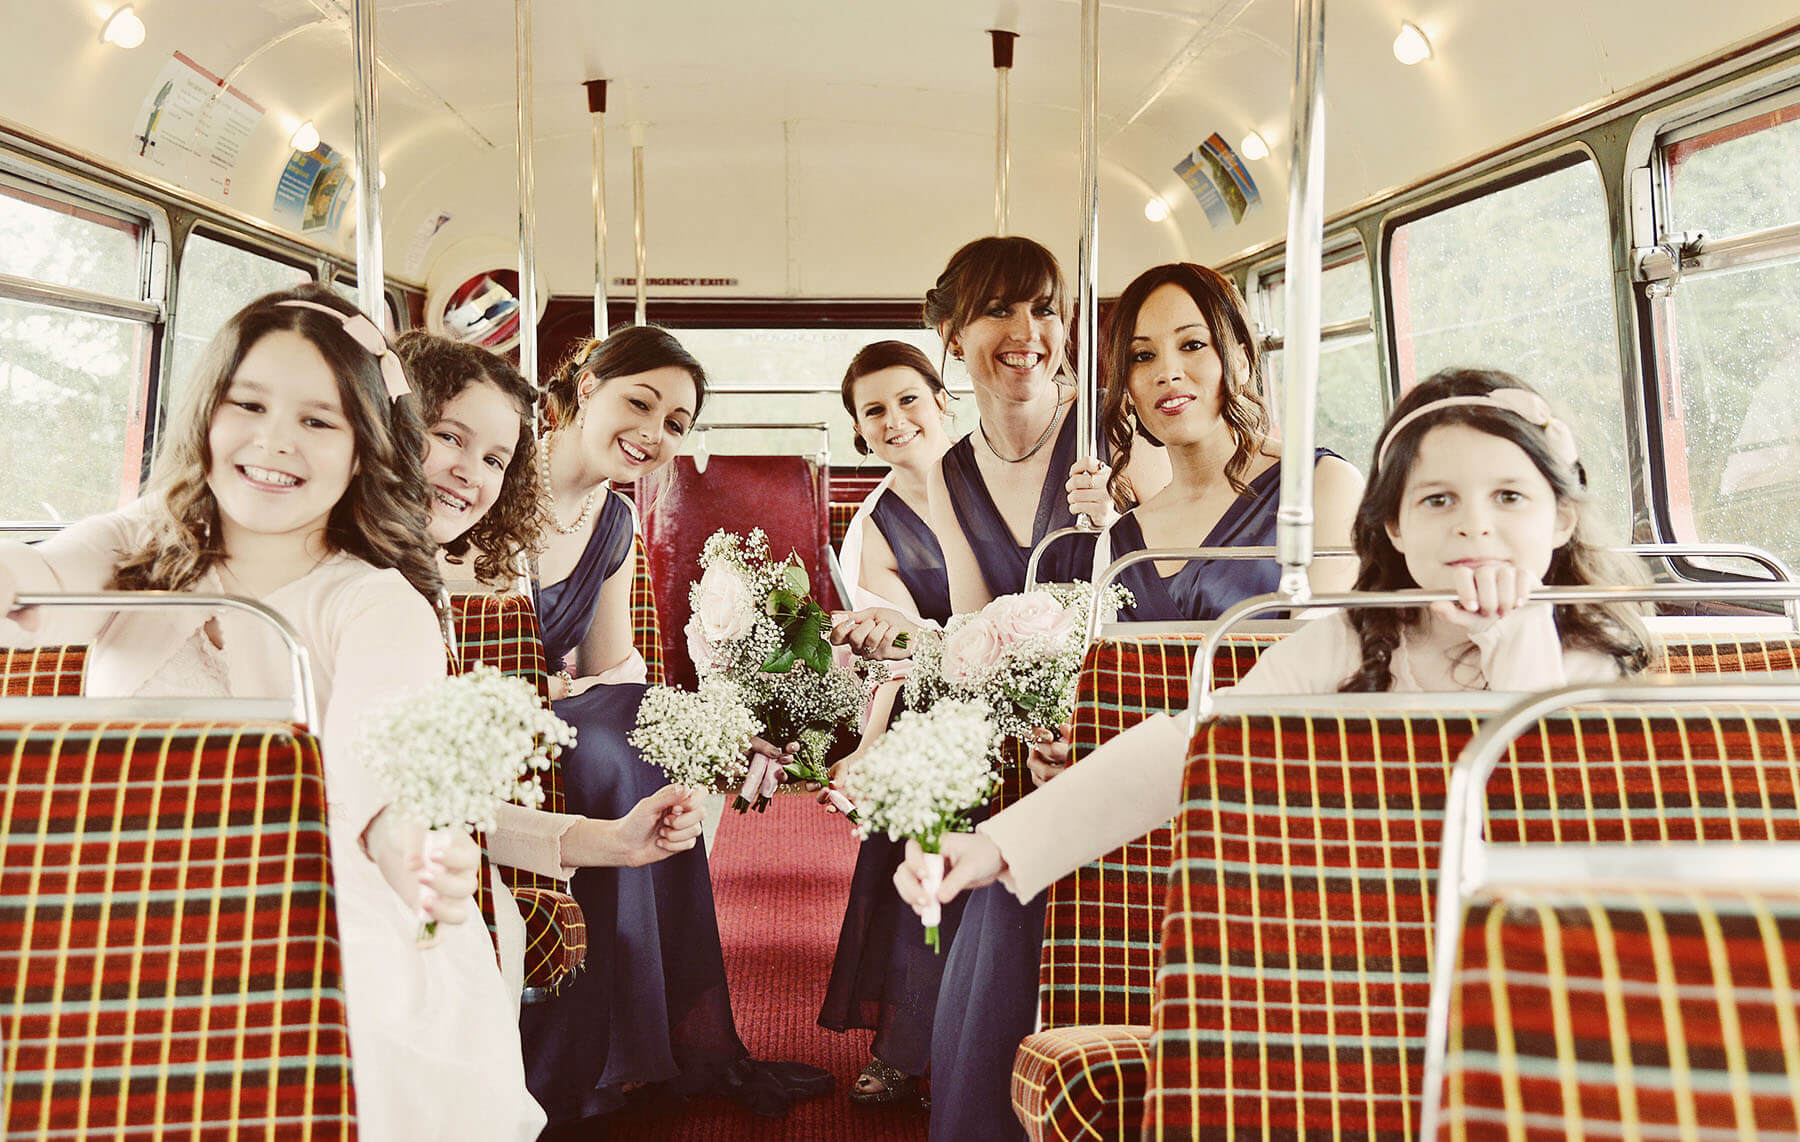 Bridal party sitting on a vintage London bus holding bouquets of flowers